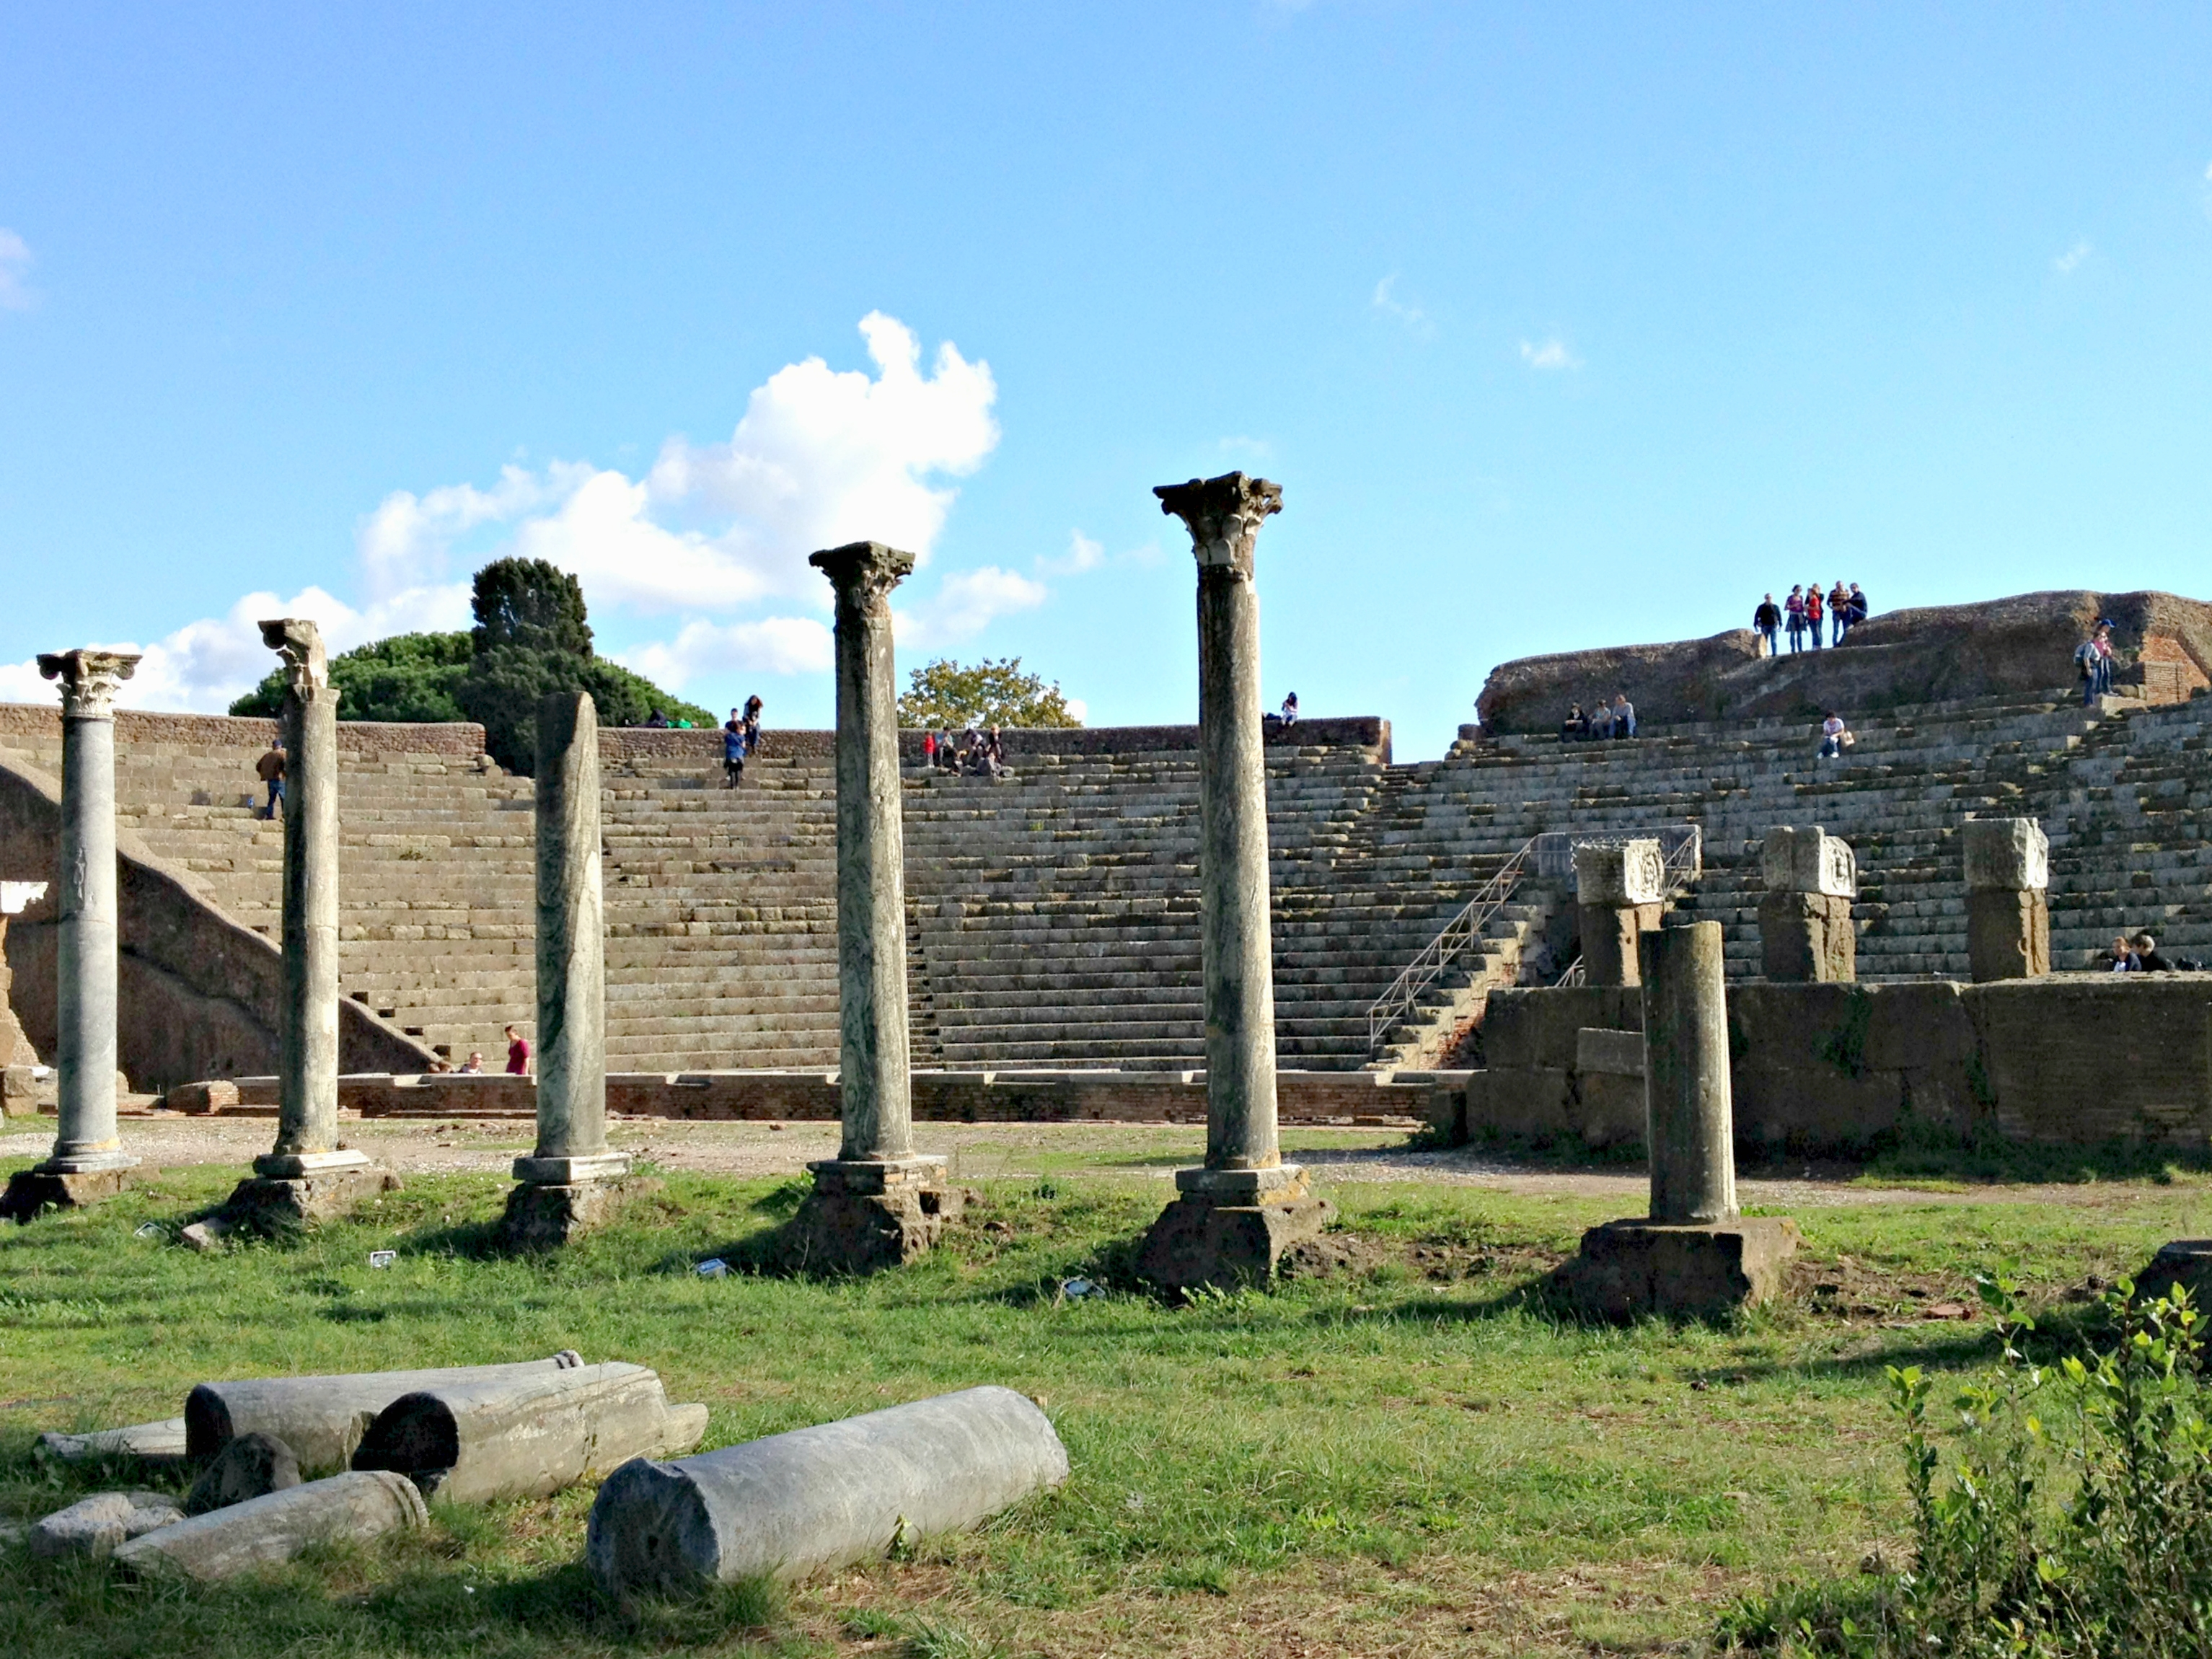 Ruins at Ostia Antica are worth a visit